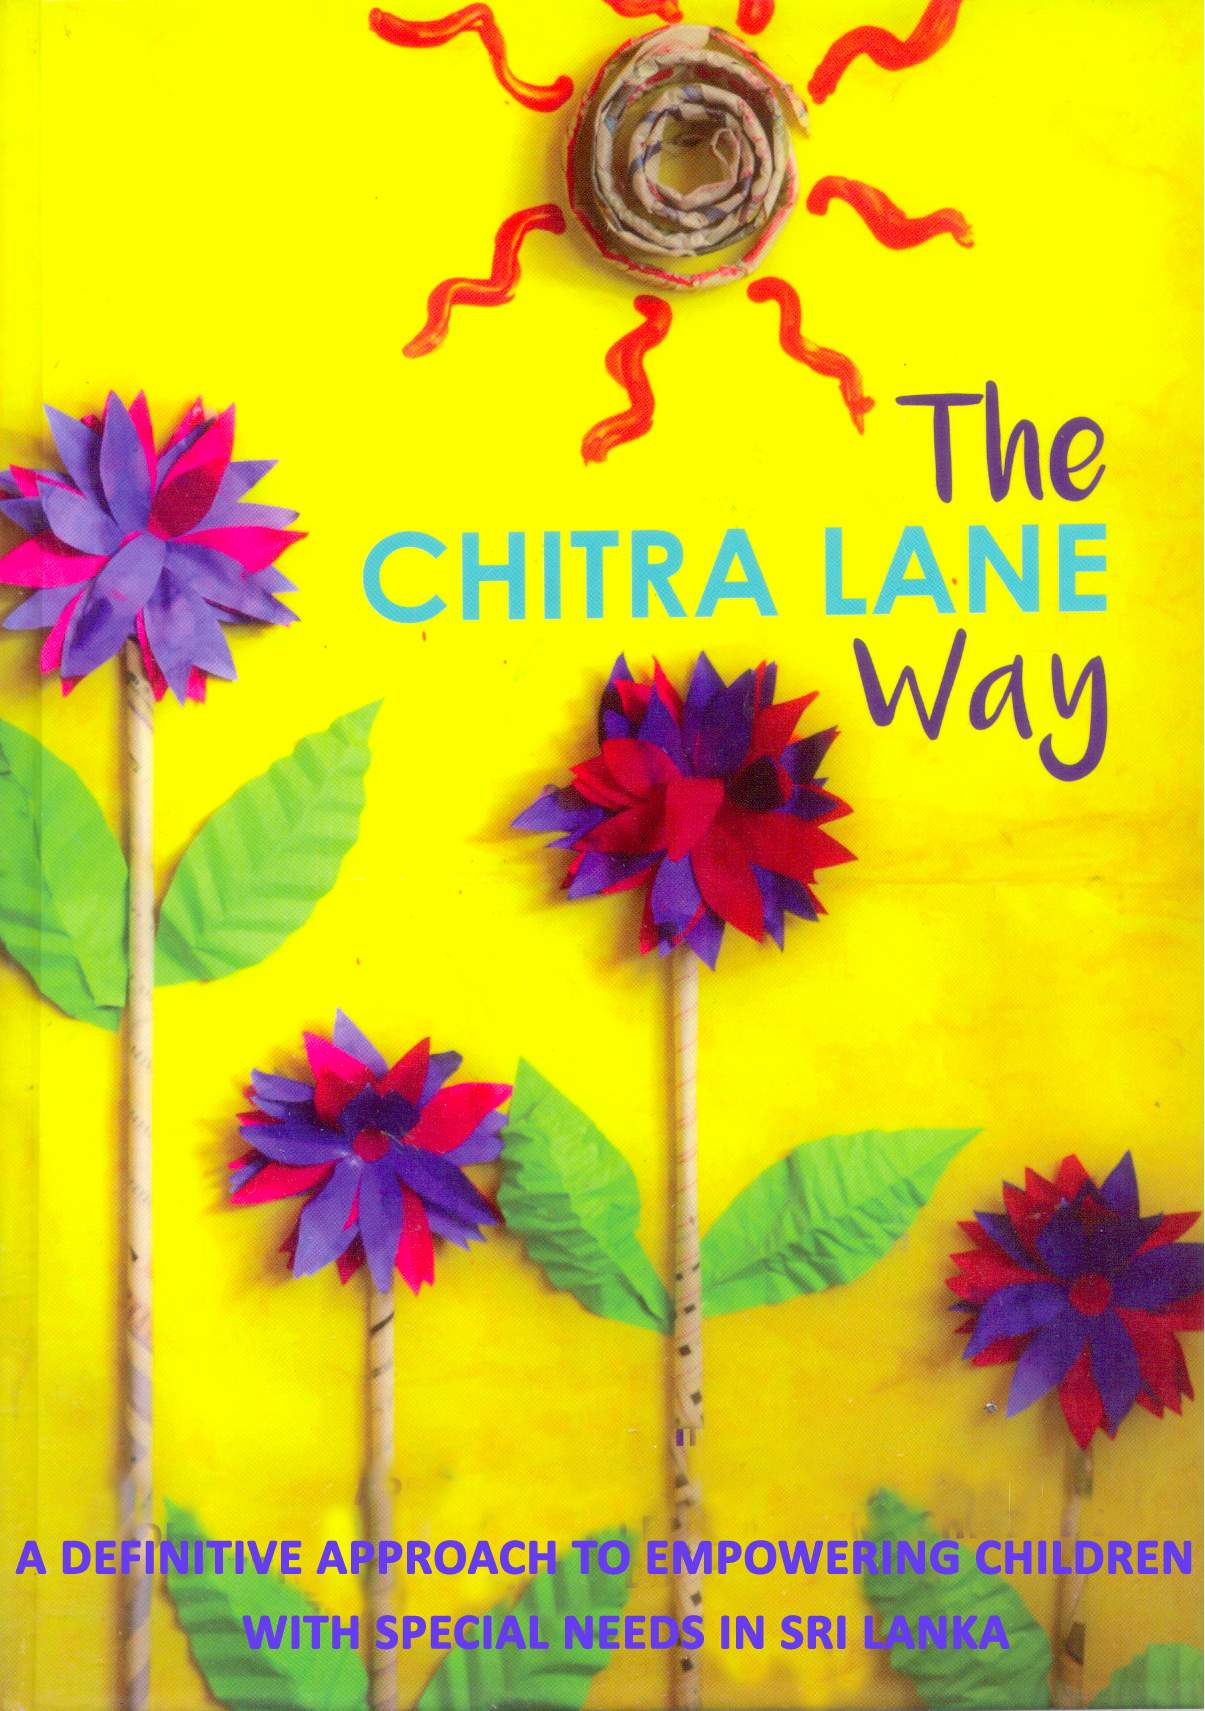 Chitra Lane Way